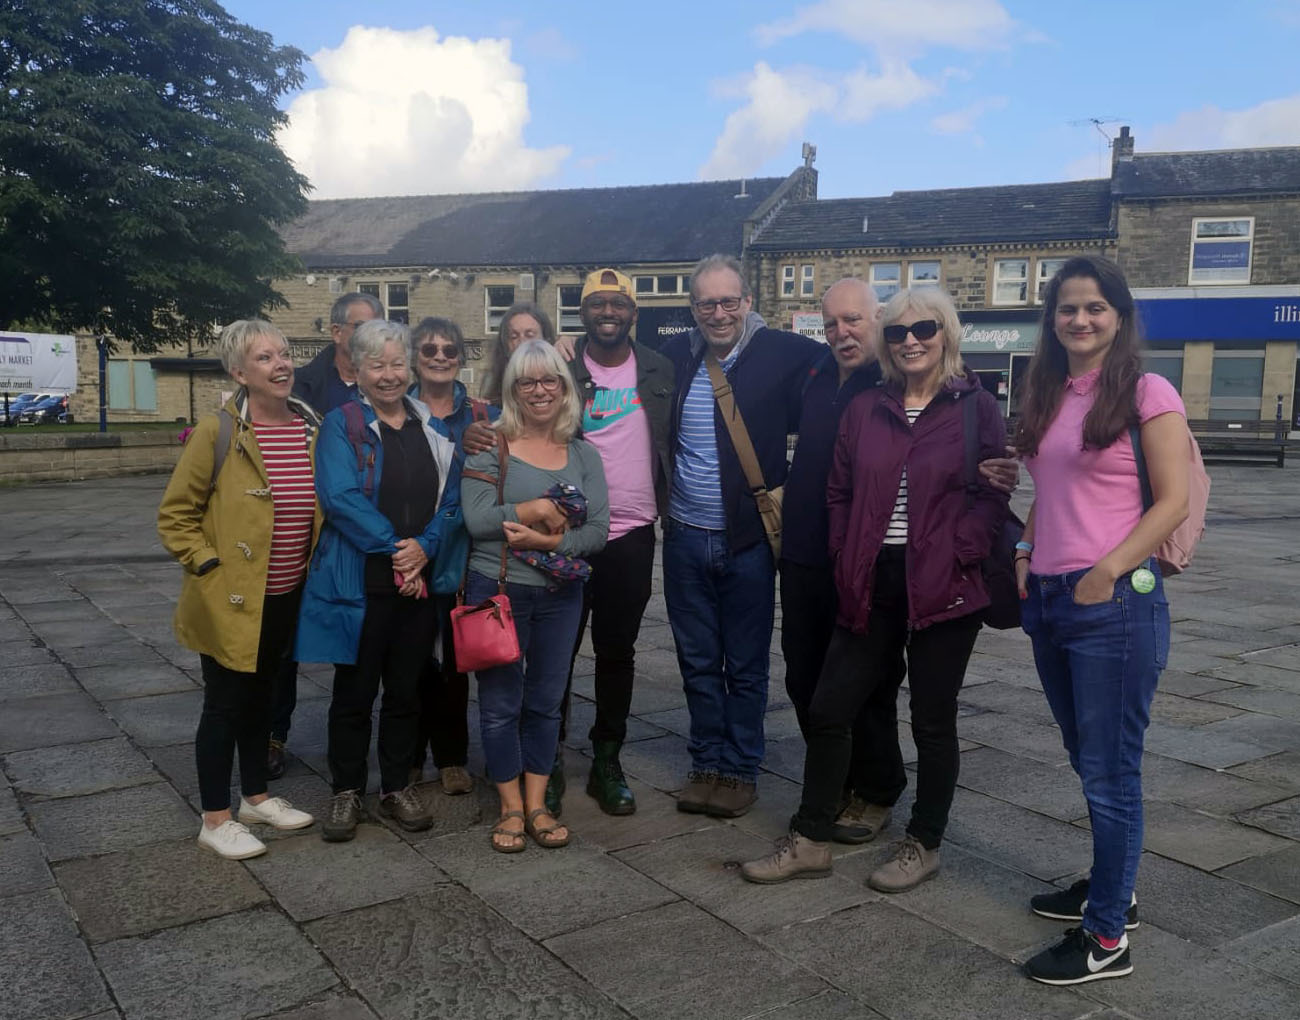 Green Party MEP Magid Magid visits Bingley